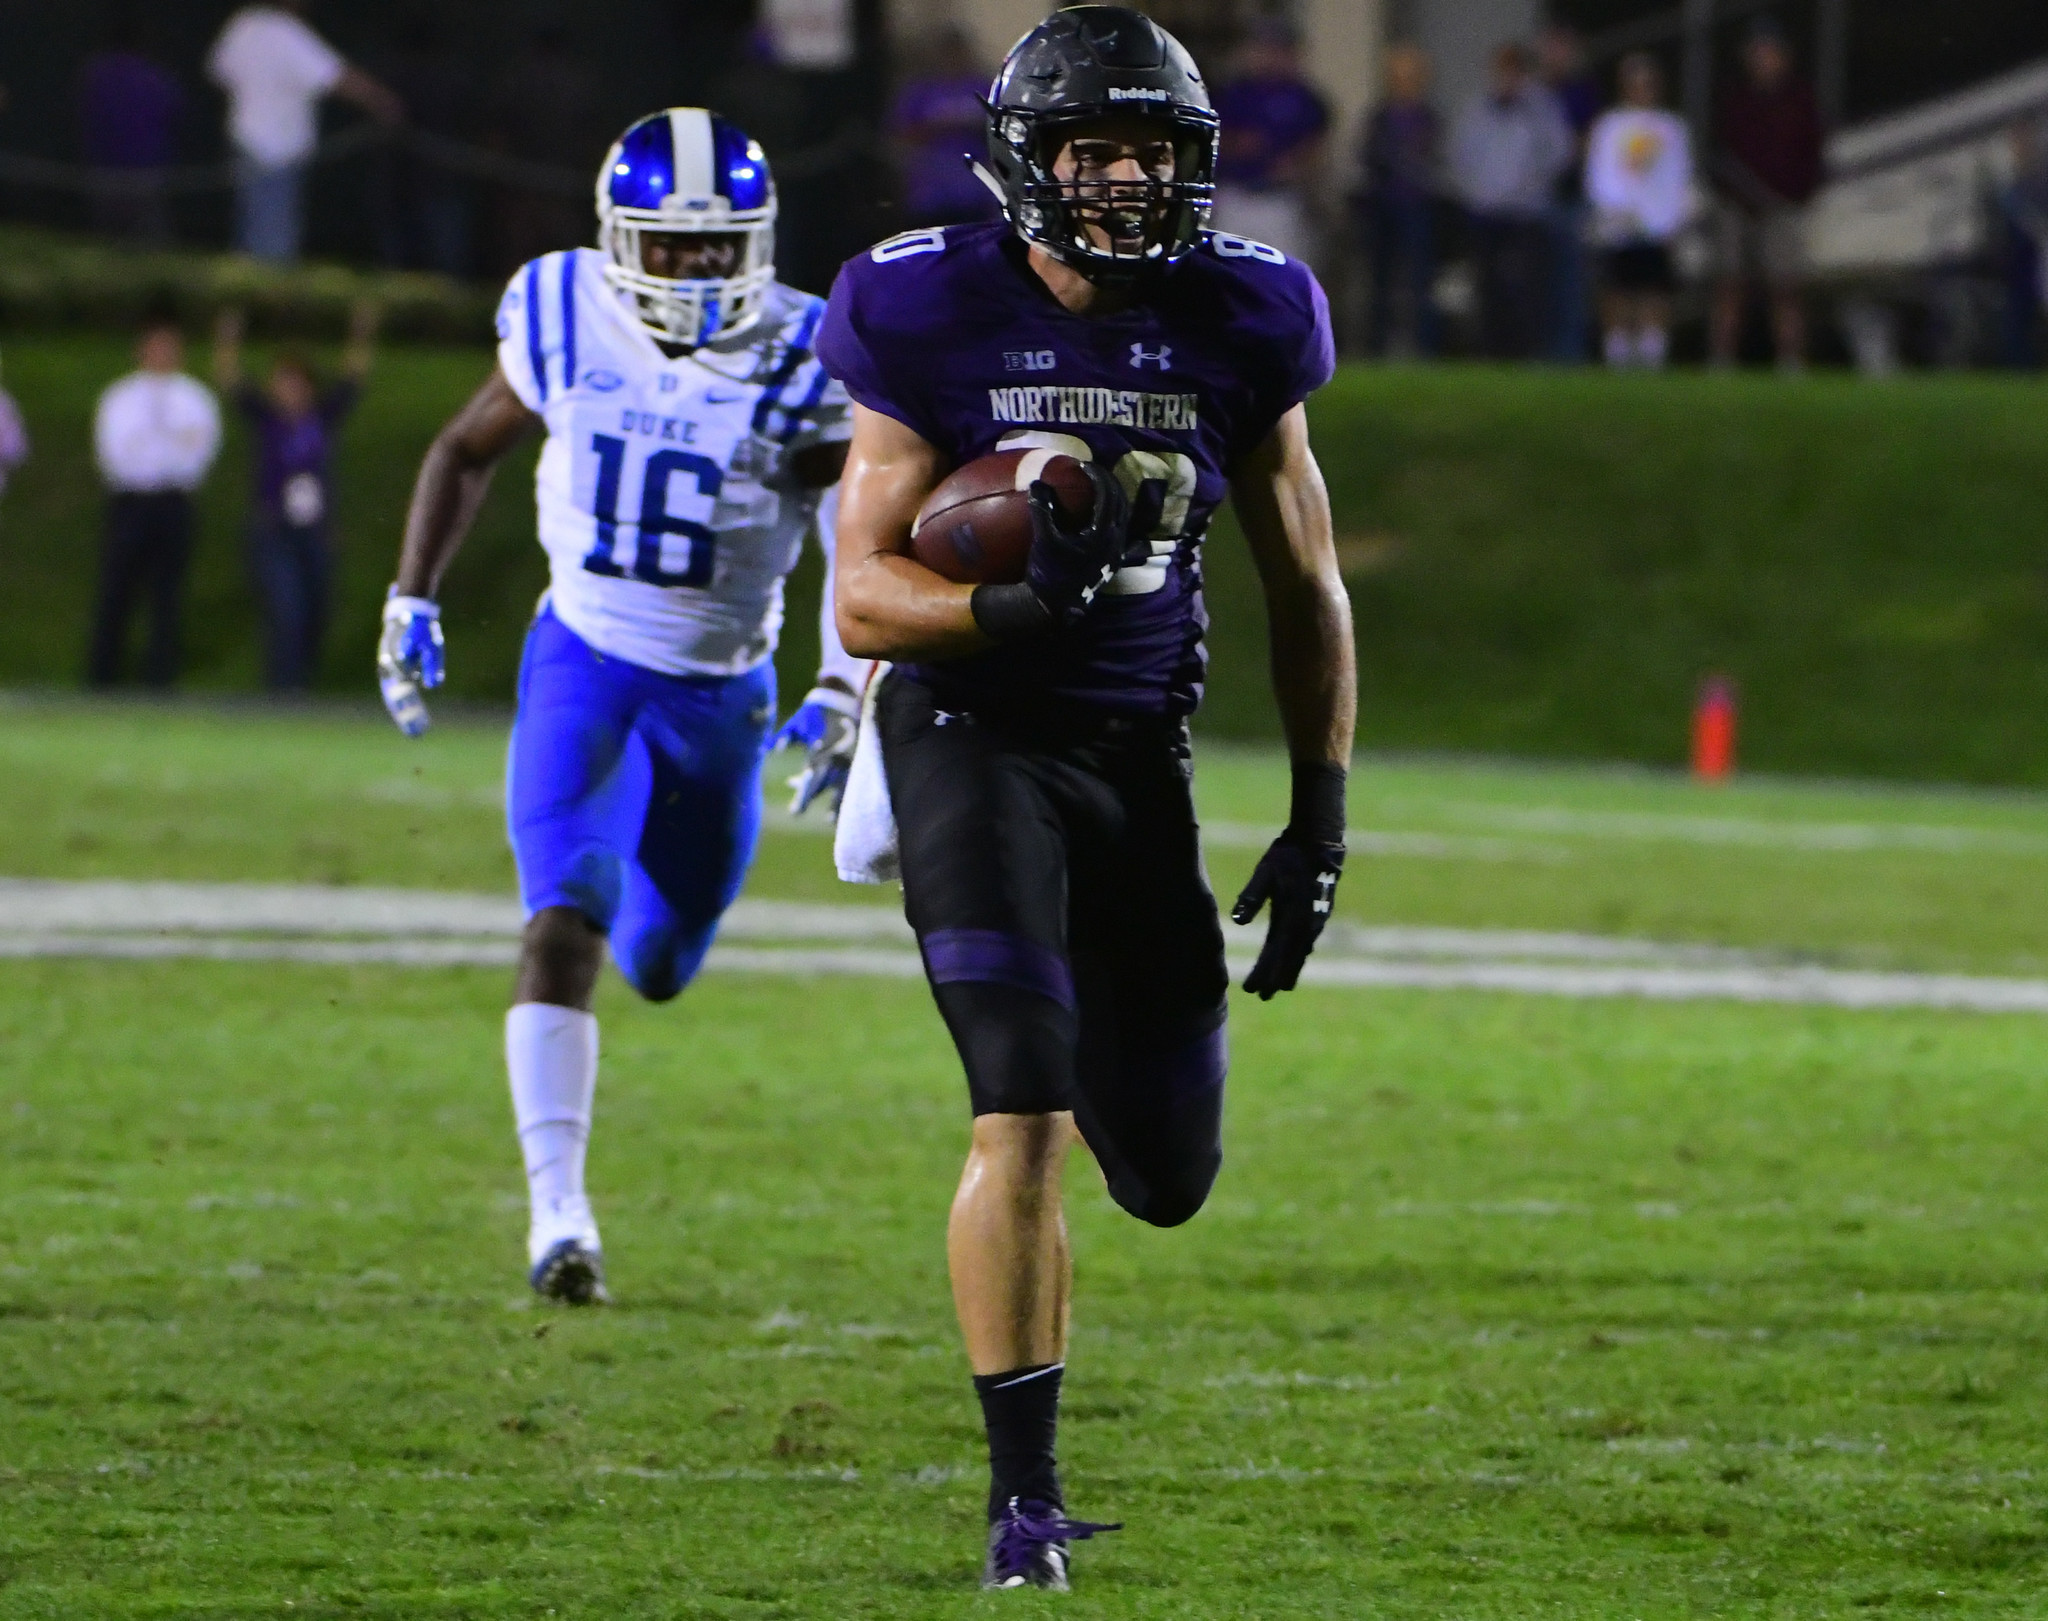 Northwestern receiver Austin Carr is a beast in more ways than one